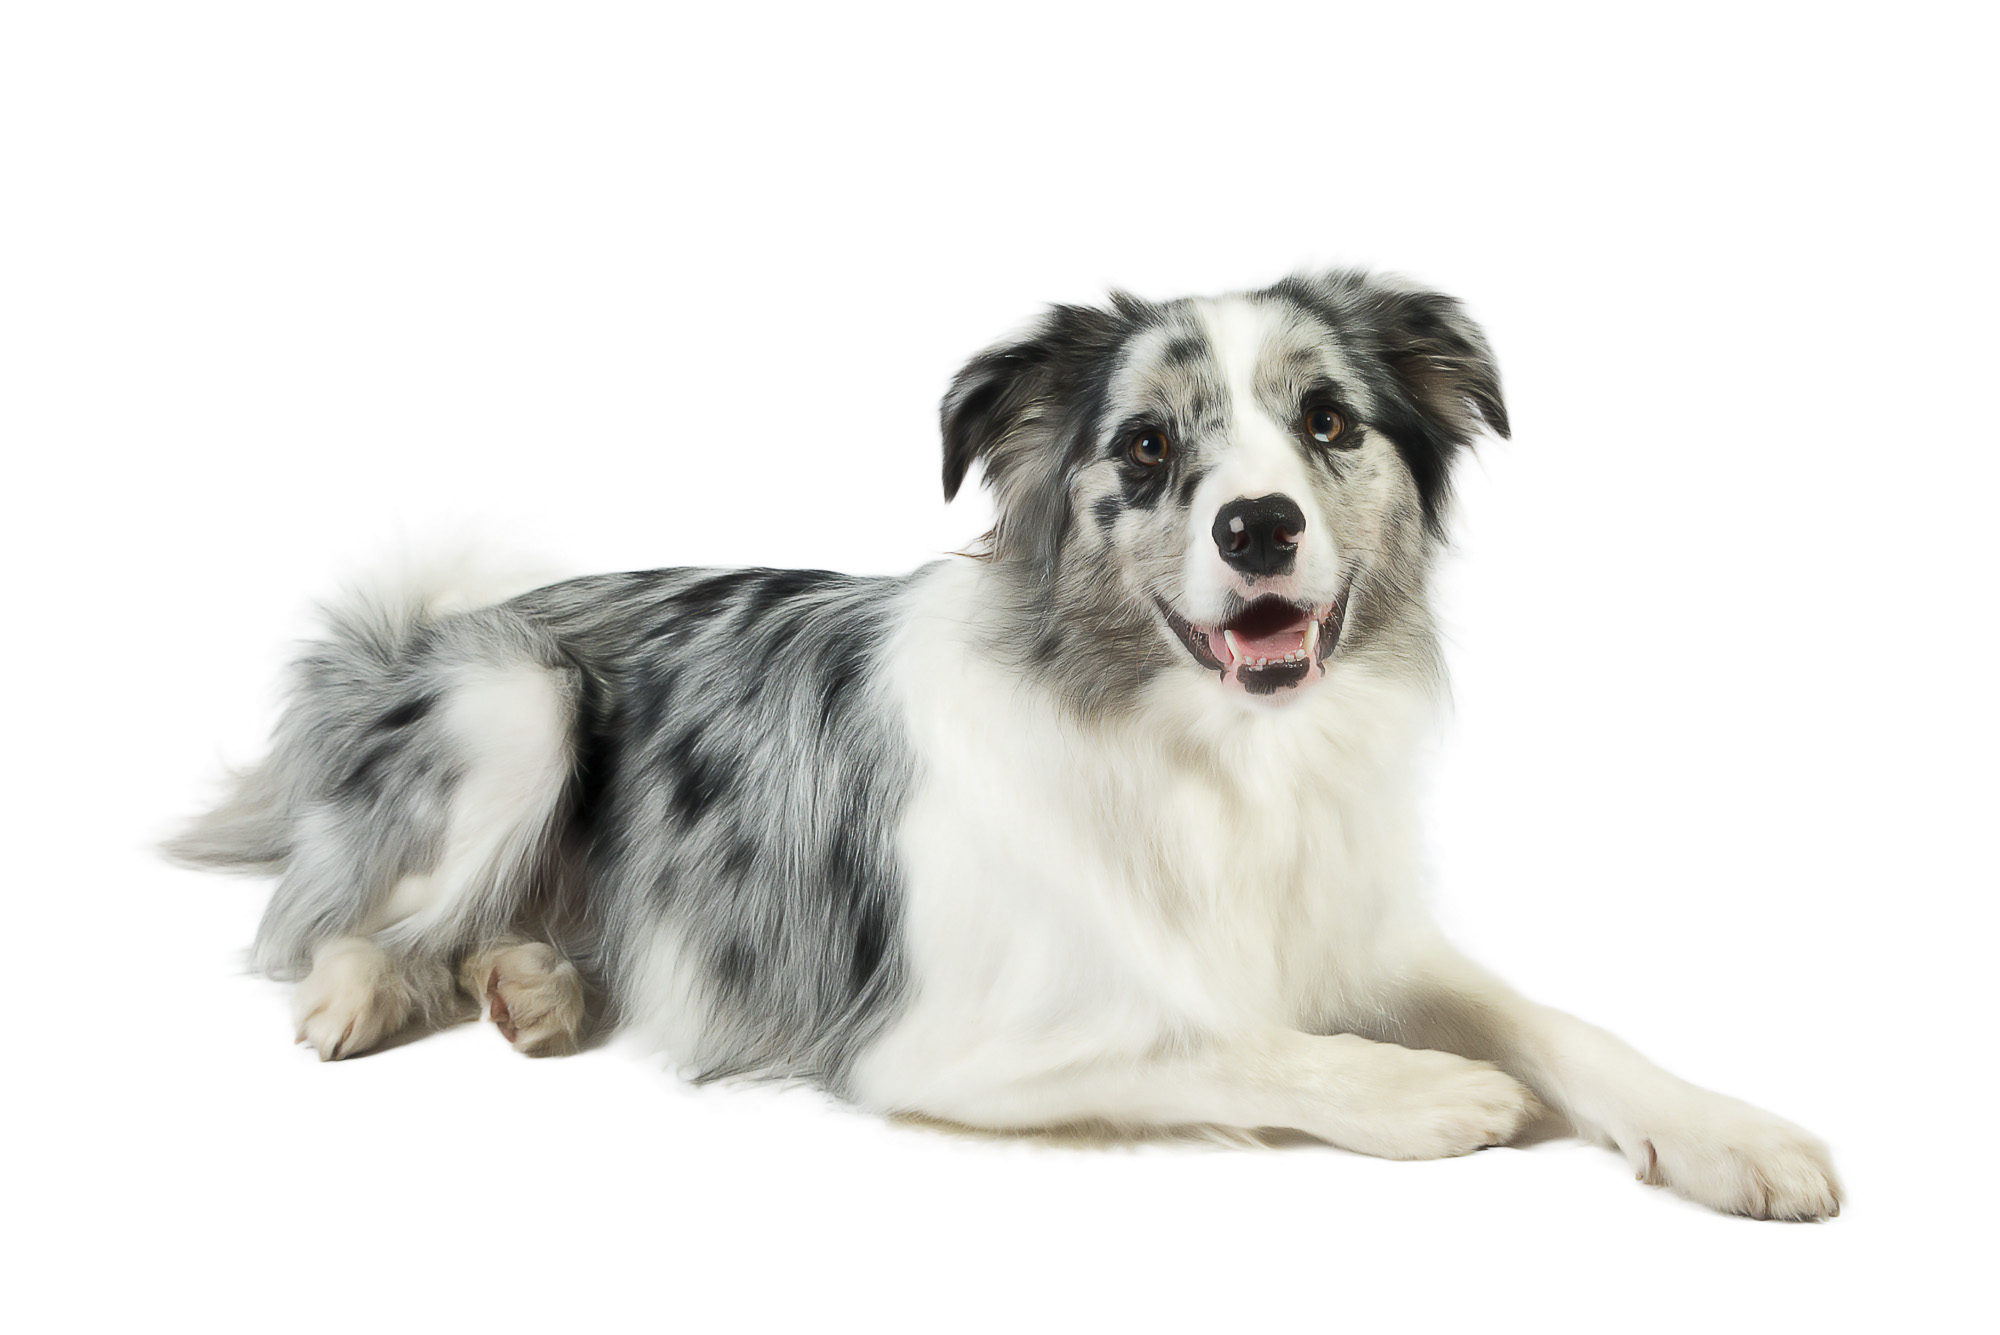 LupinBay-0124-2534-Border-Collie-Blue-Merle-Dog-Pet-Photography.jpg